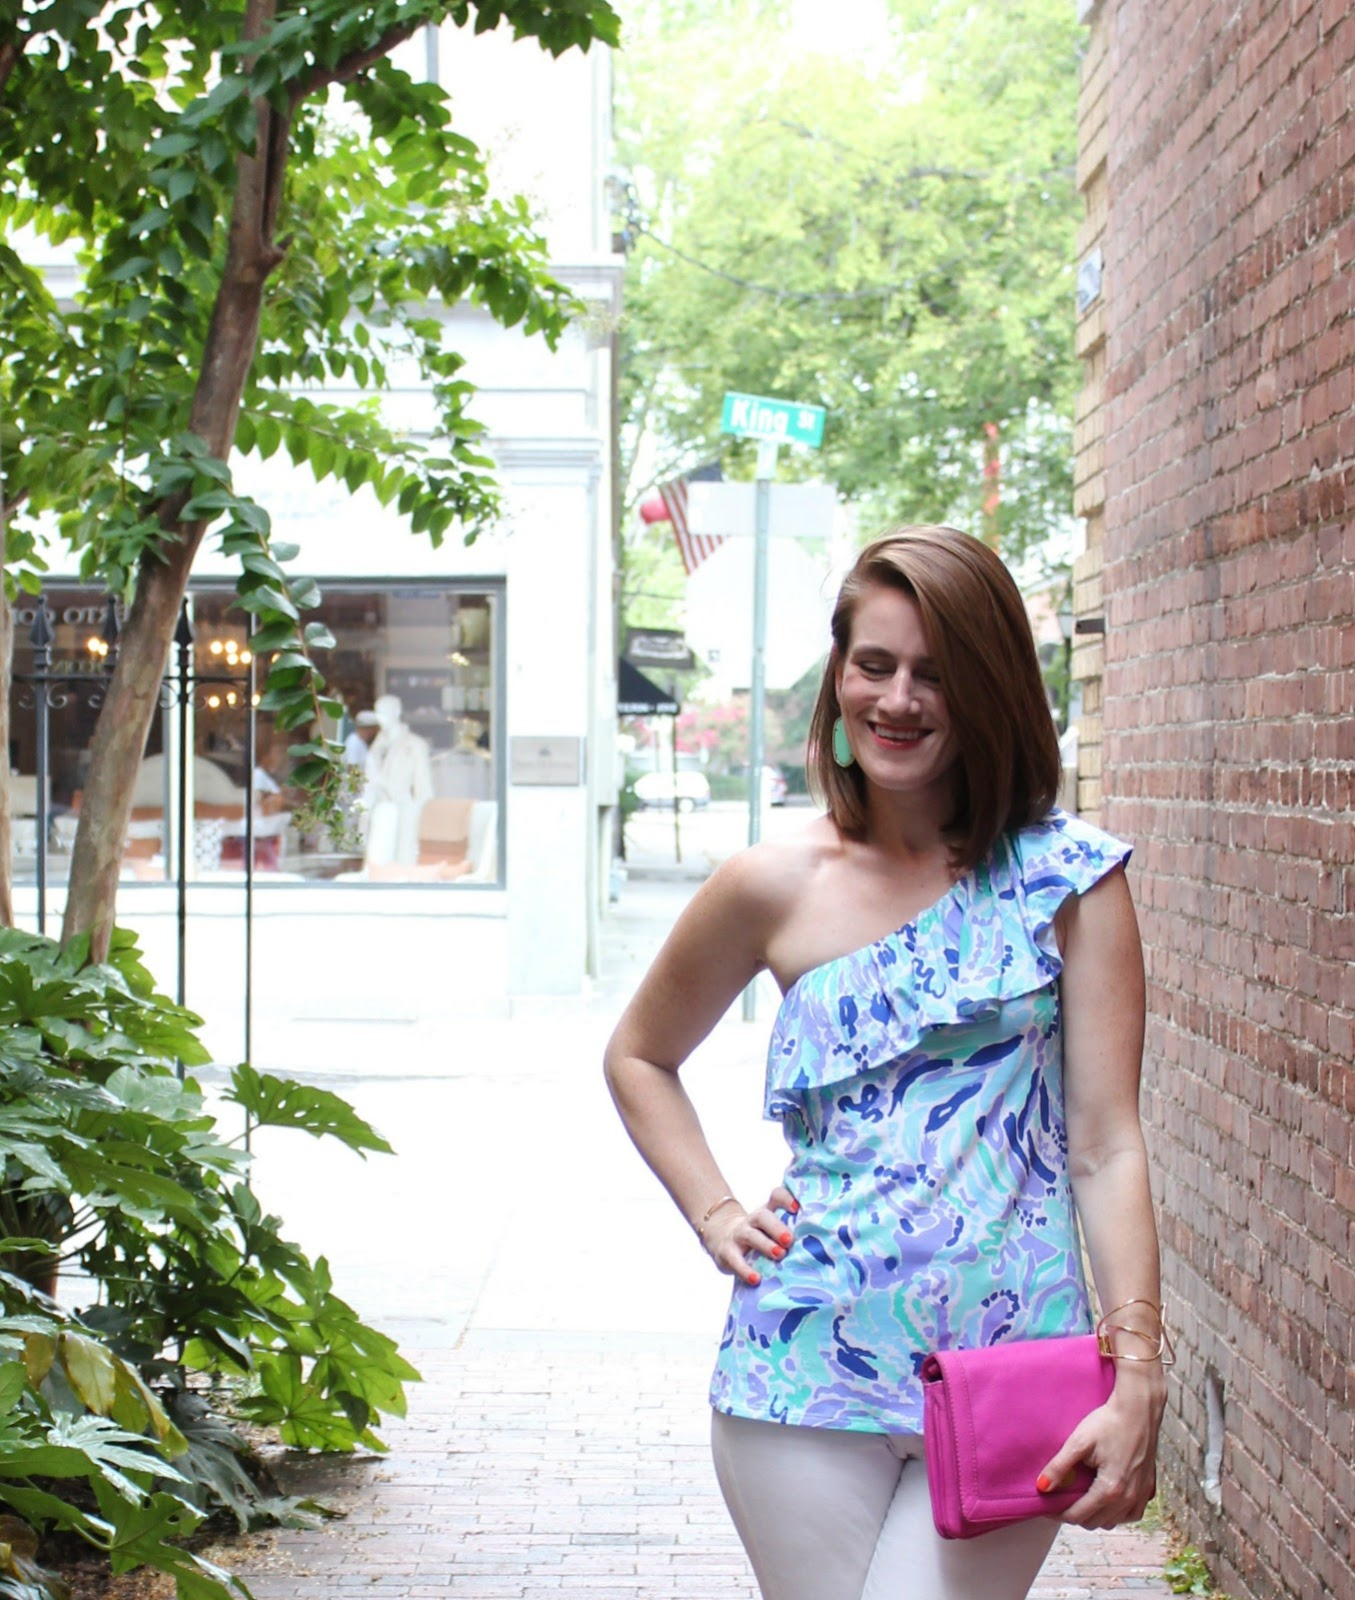 lilly pulitzer one shoulder top - lilly pulitzer - lilly pulitzer neveah one shoulder top - lilly pulitzer neveah top